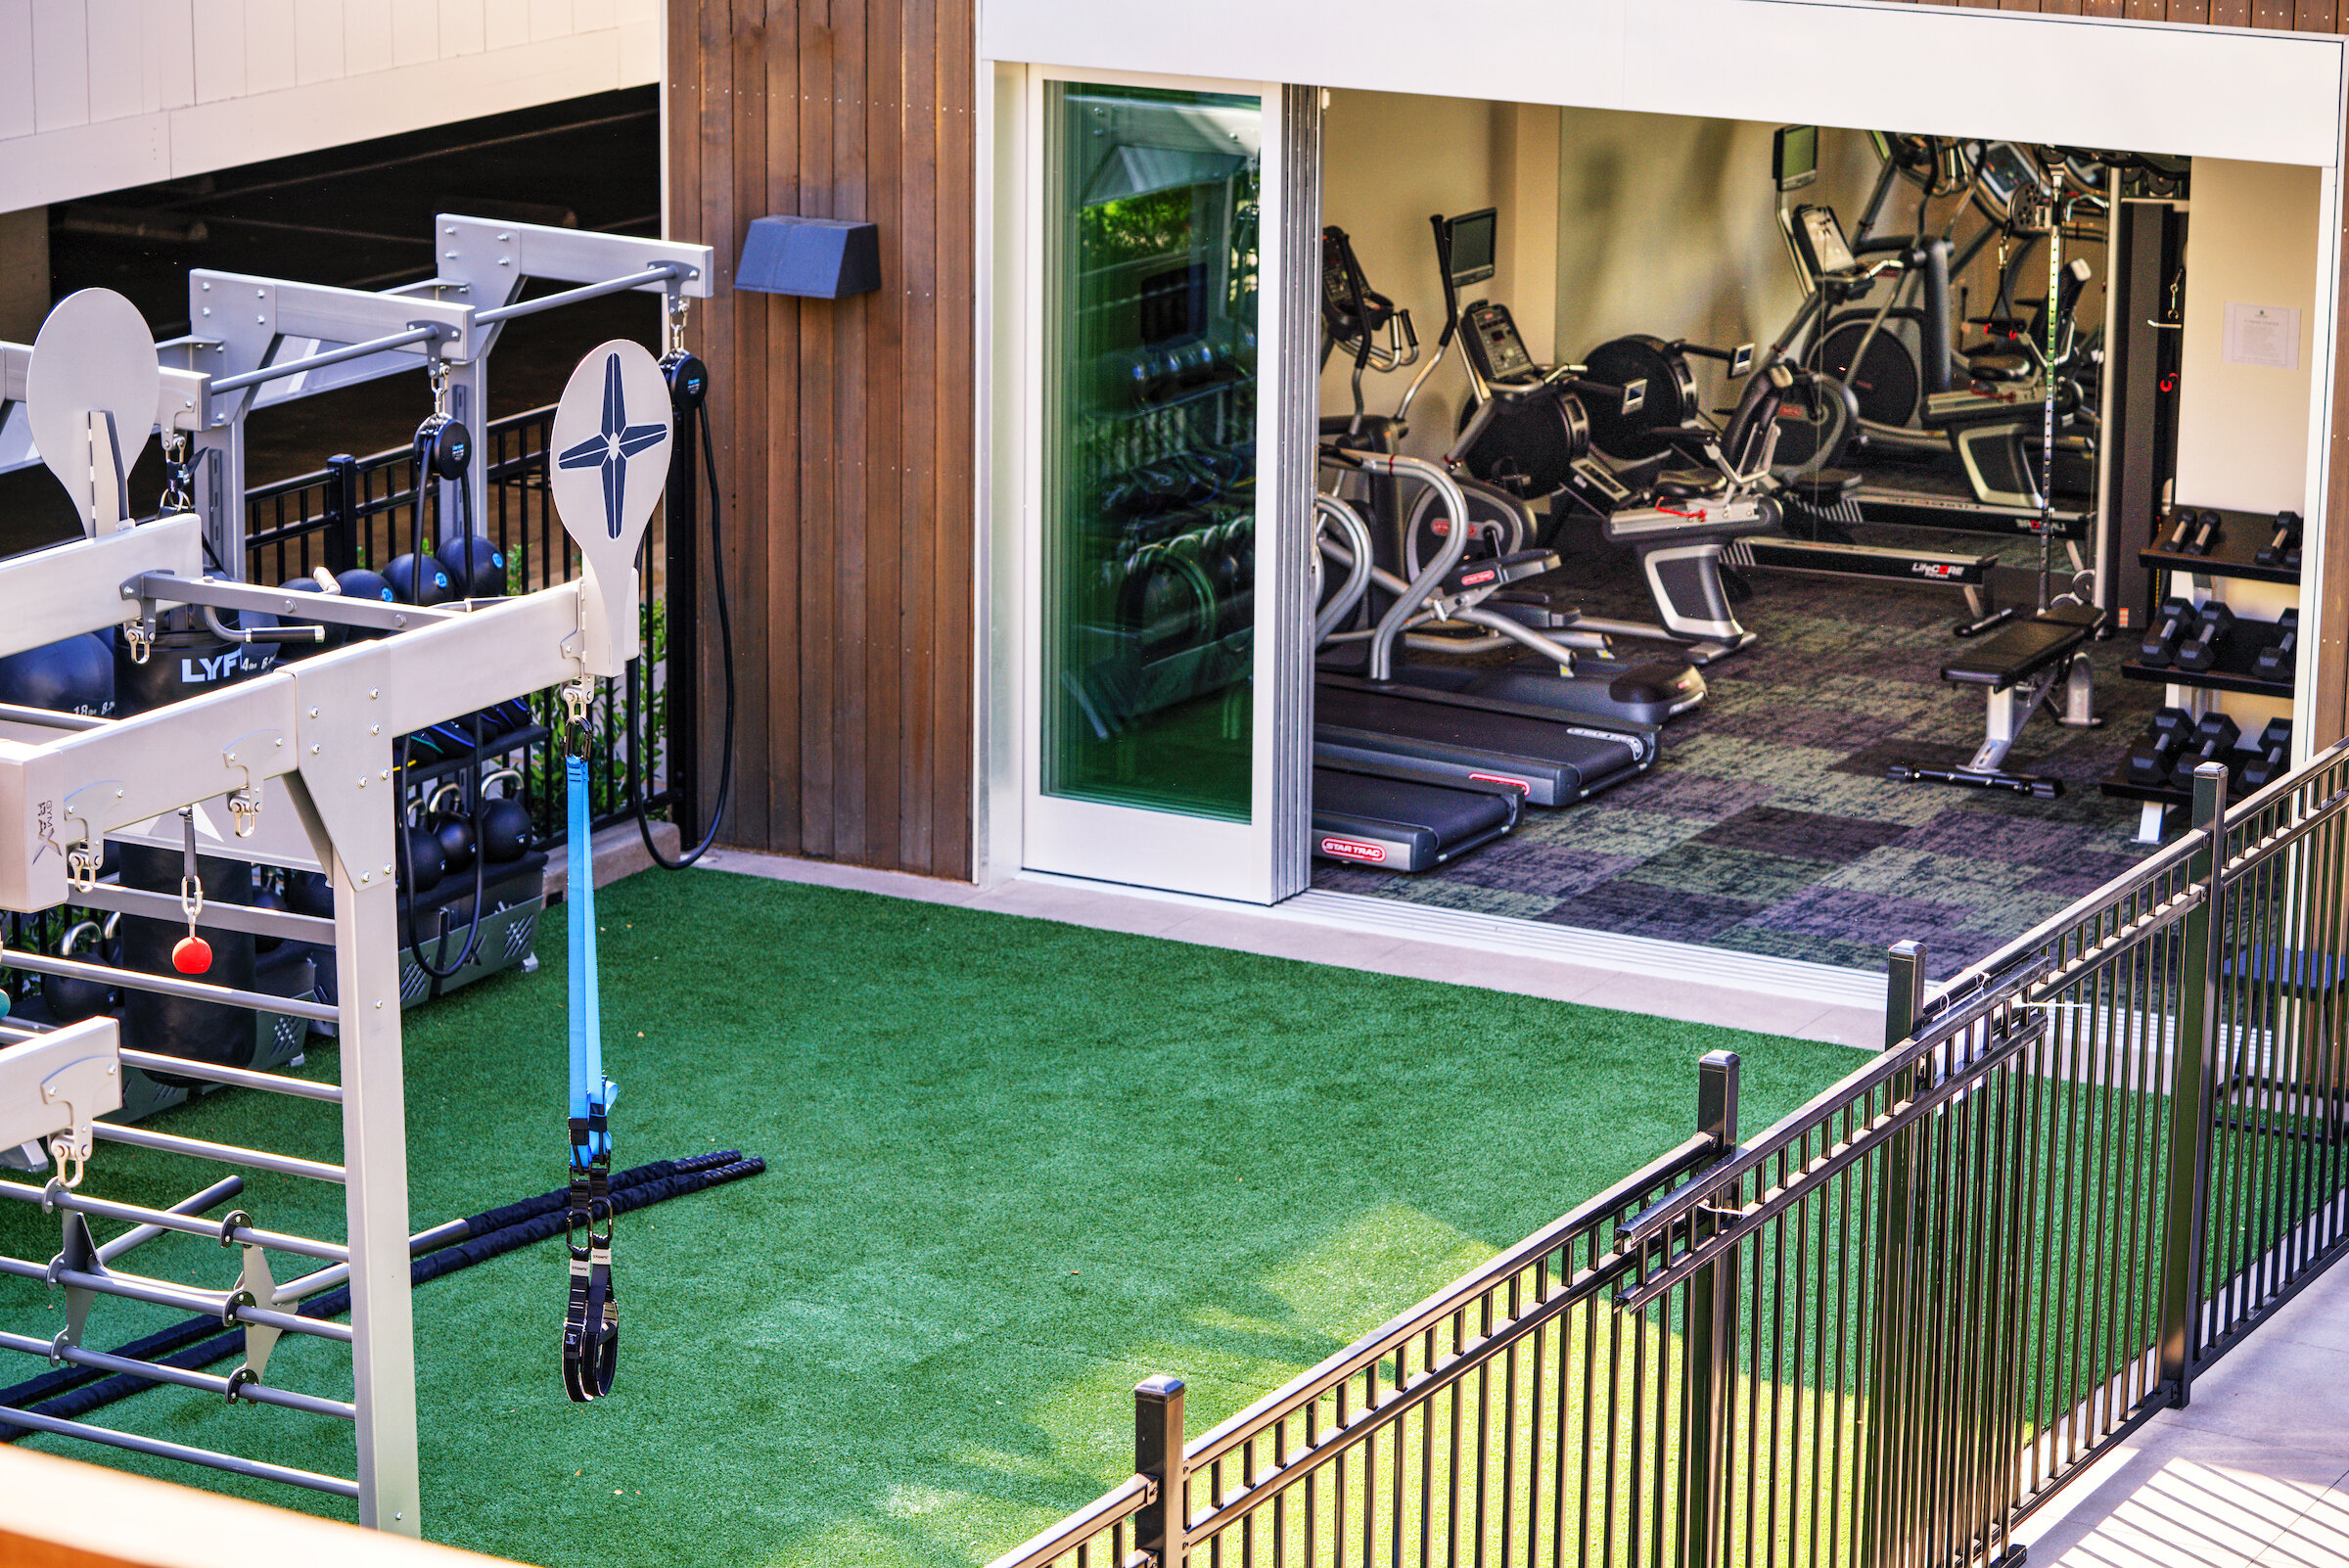 Sharon Green Menlo Park_Clubhouse with Indoor Outdoor Fitness Center_190926_1628_l.jpg